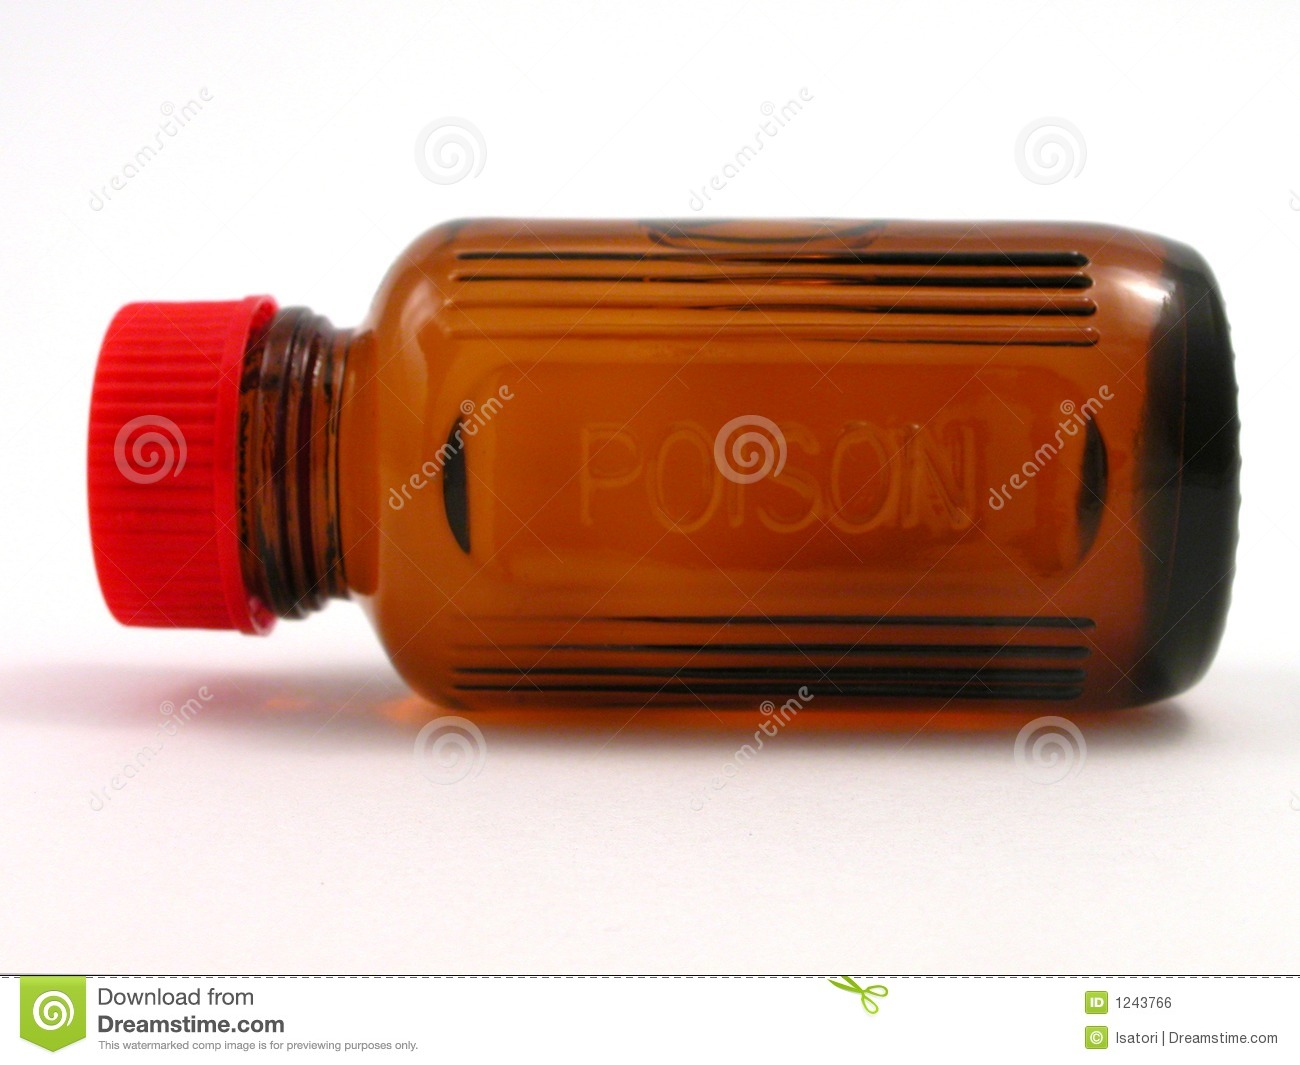 Small Poison Bottle With Red Cap Royalty Free Stock Image - Image ...